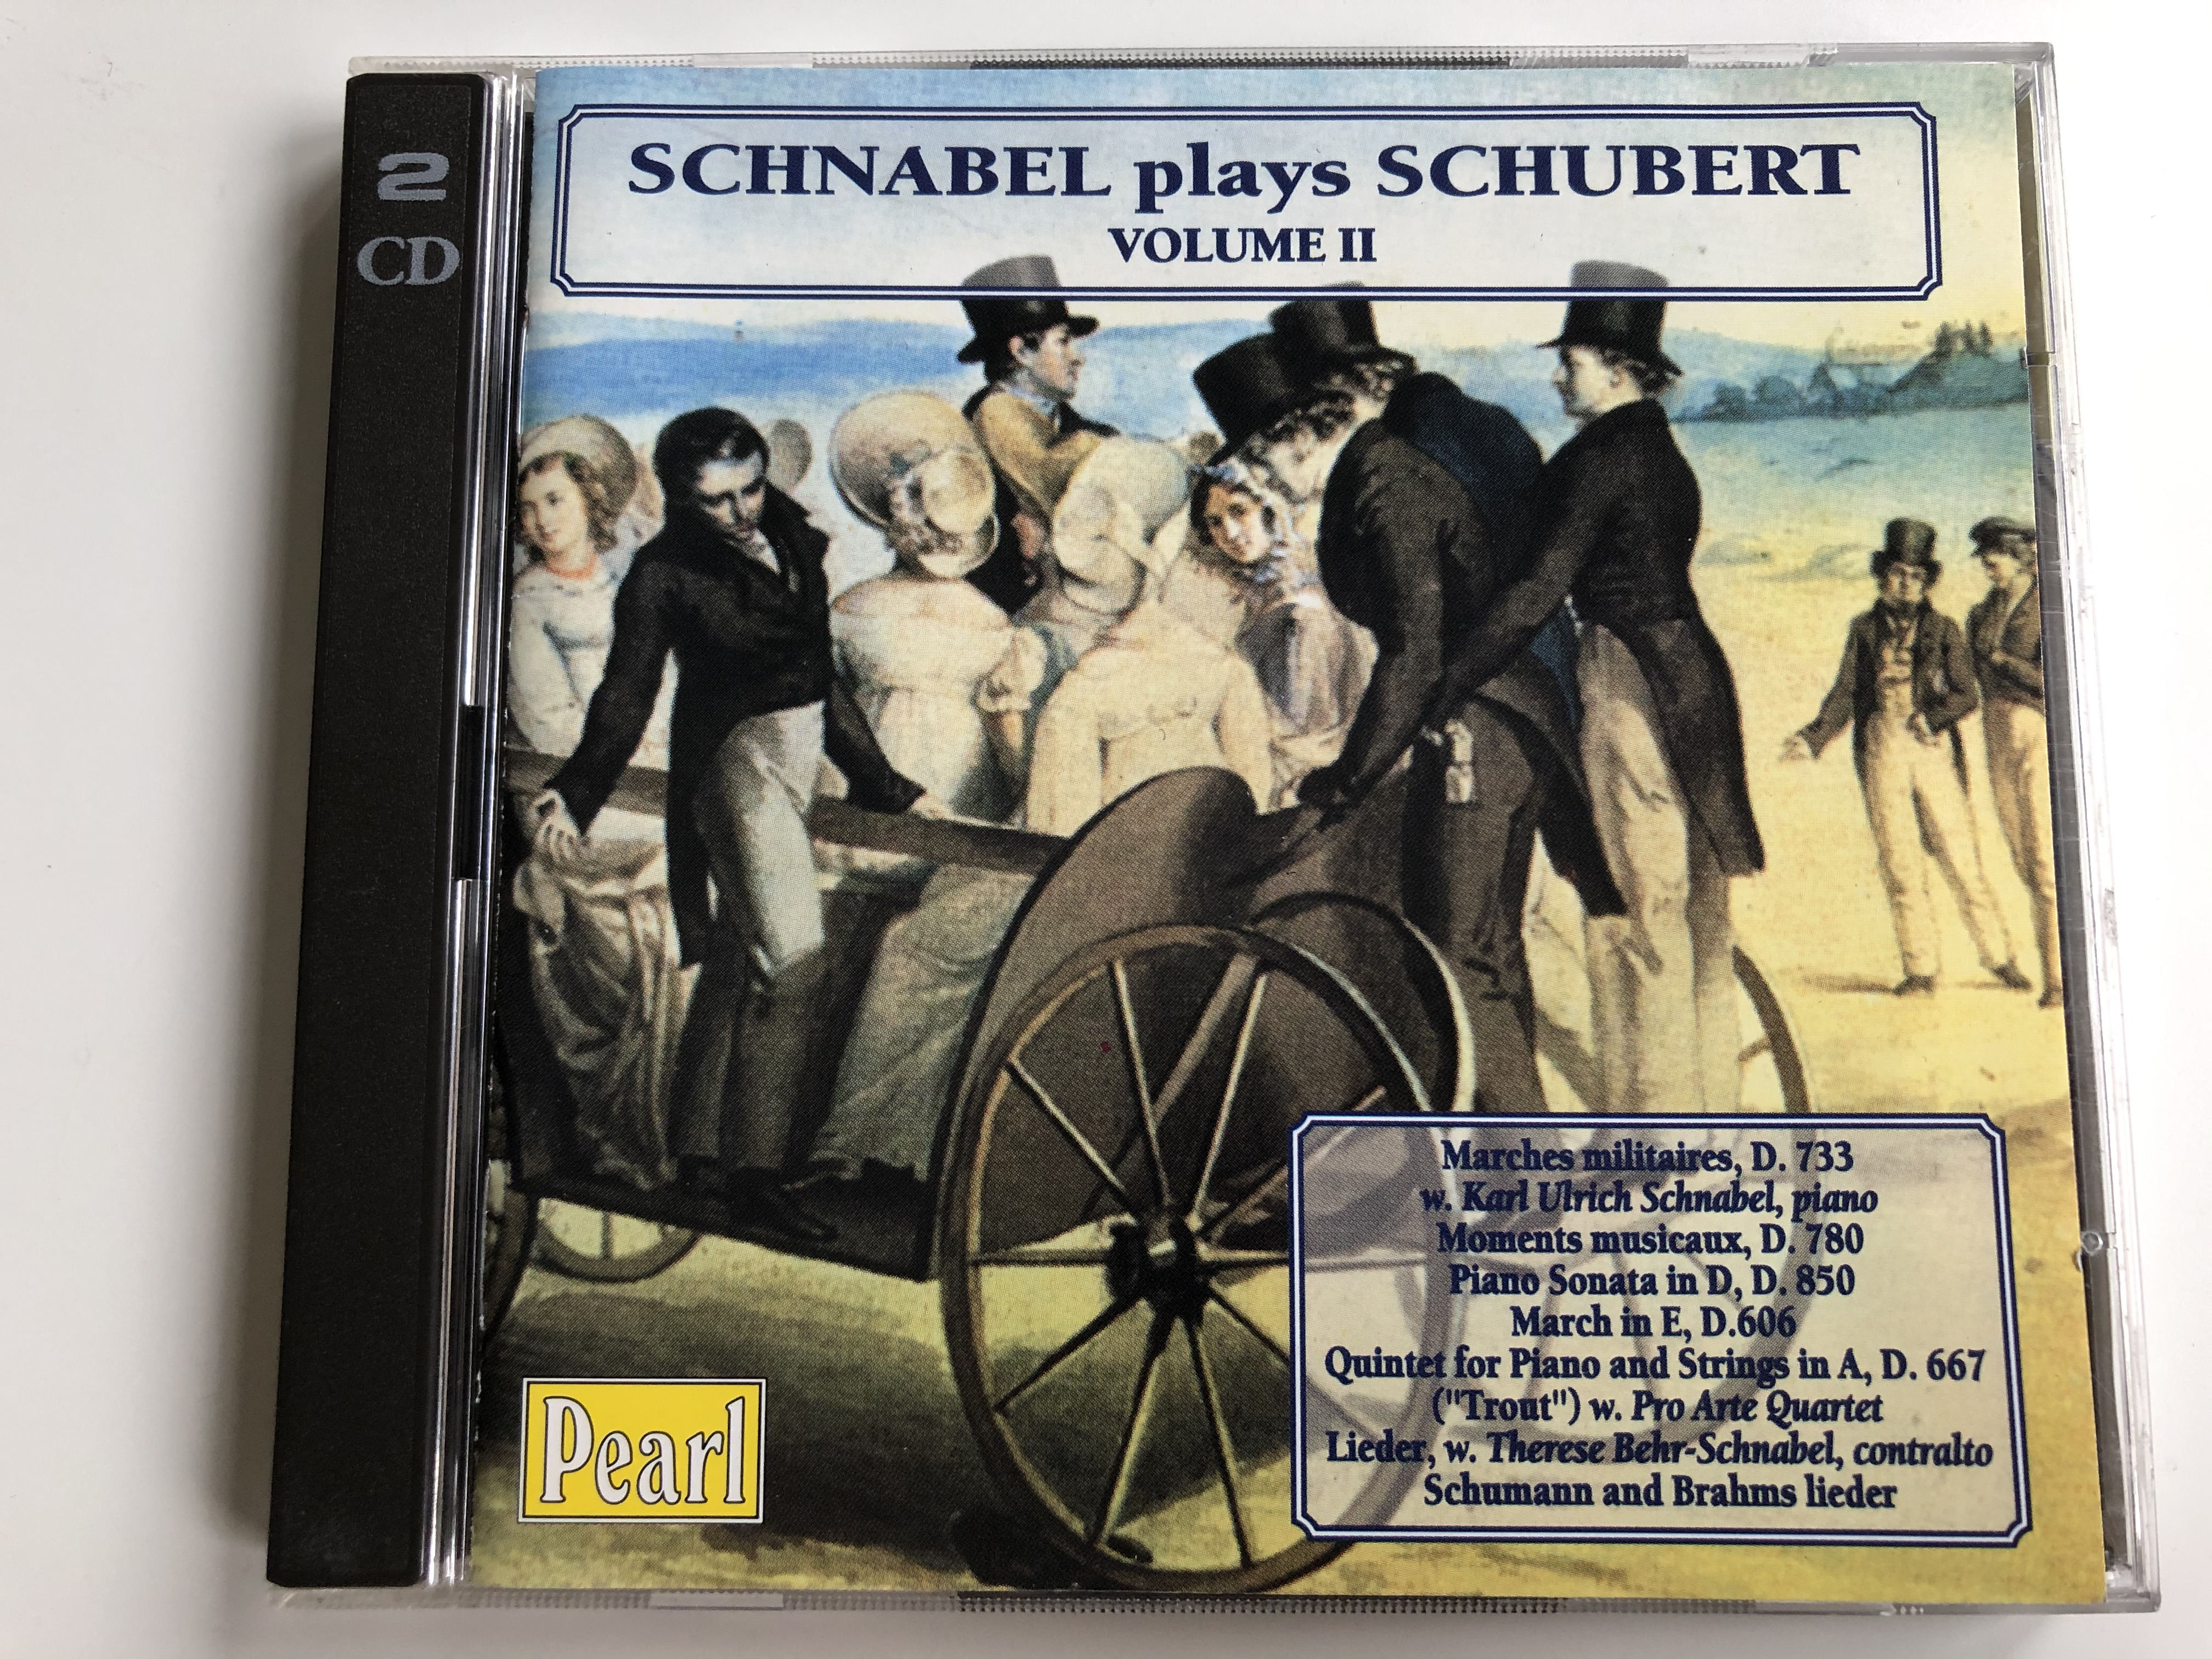 schnabel-plays-schubert-volume-ii-marches-militaires-d.-733-moments-musicaux-d.-780-piano-sonata-in-d-d.-850-march-in-e-d.-606-quintet-for-piano-and-strings-in-a-d.-667-trout-lieder-1-.jpg